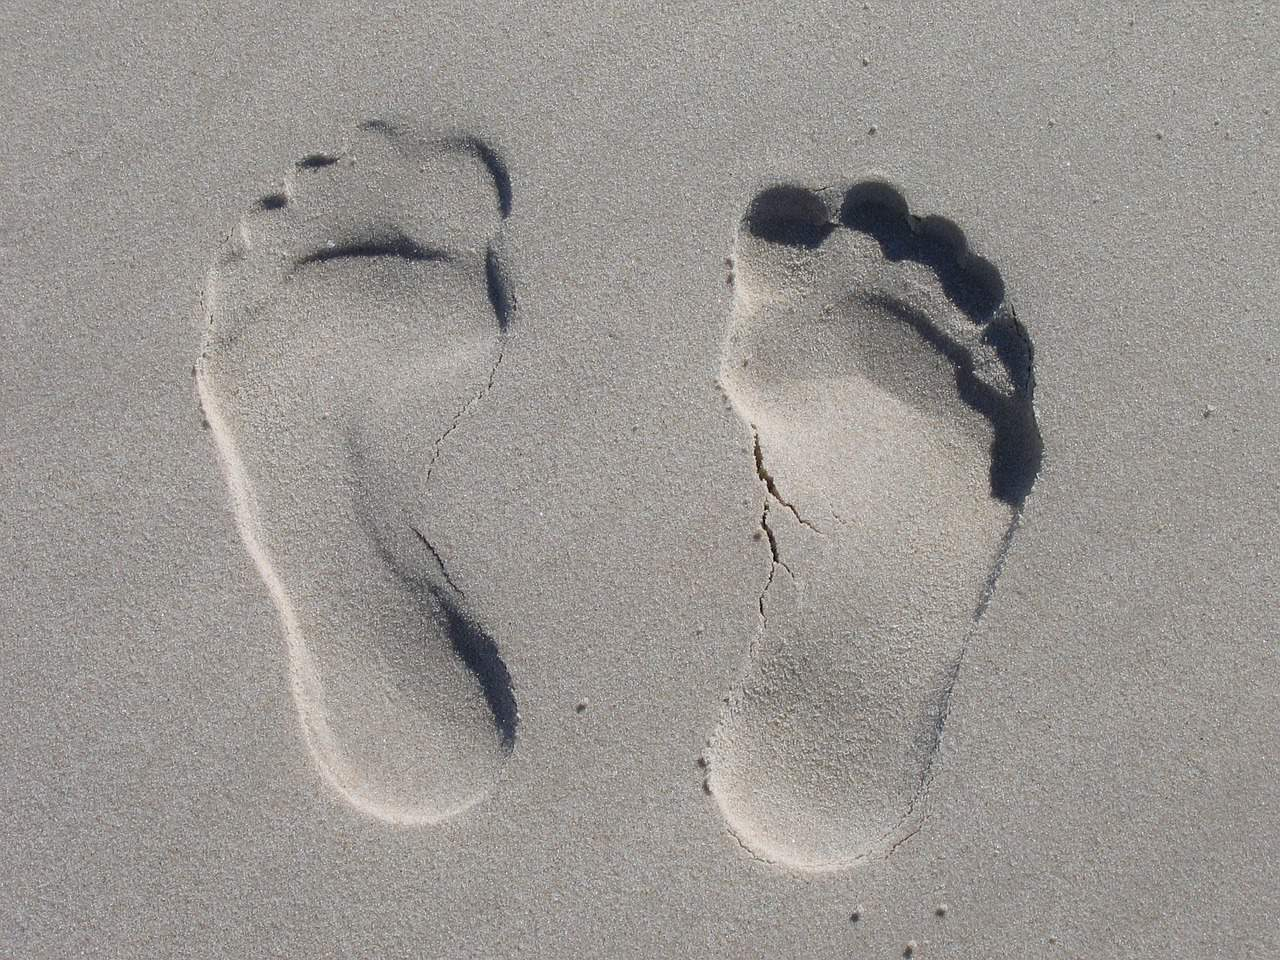 imprints of human feet in sand